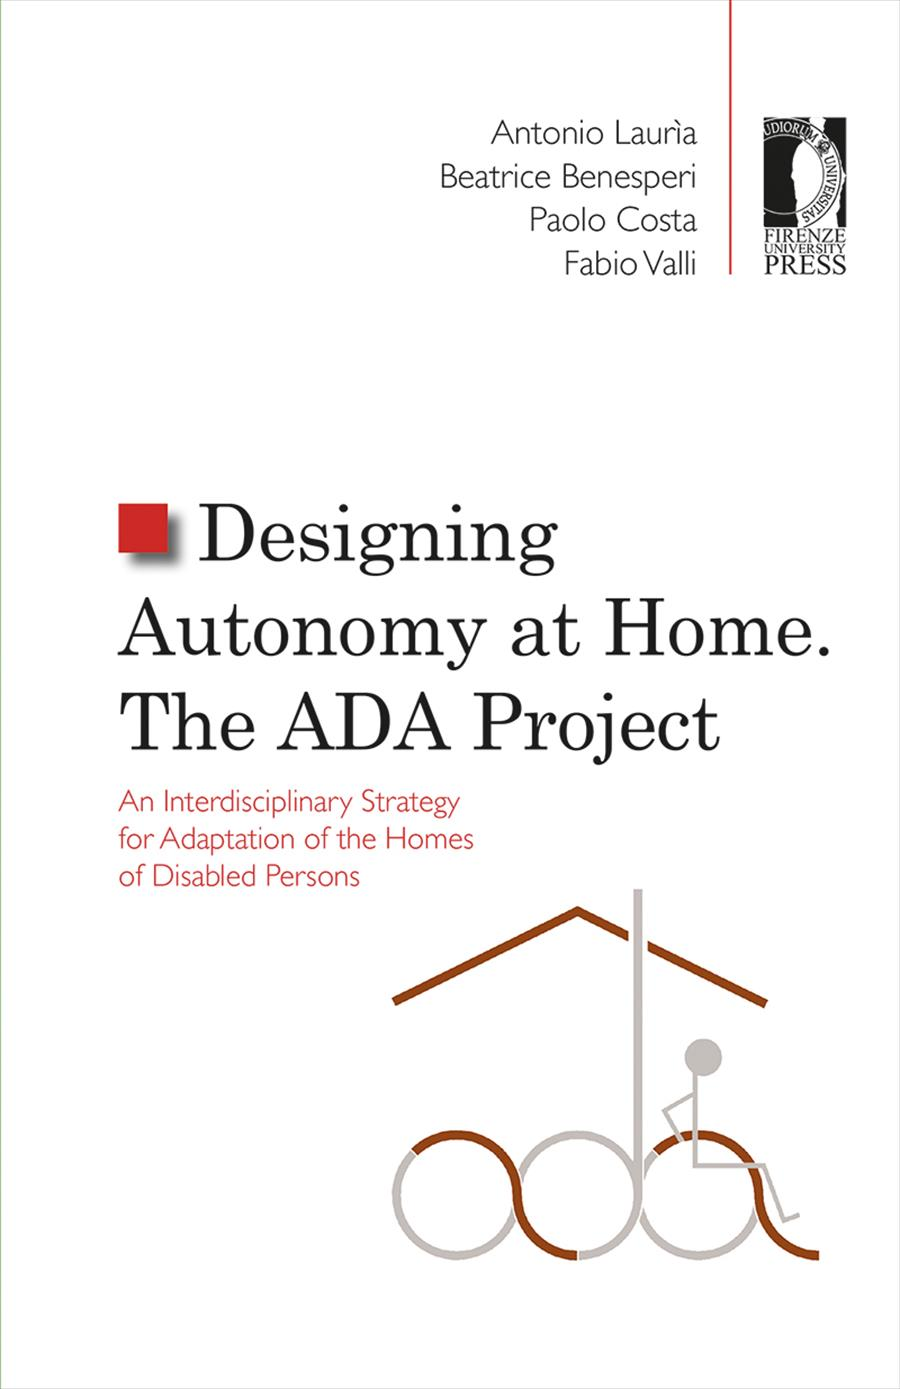 Designing Autonomy at home. The ADA Project